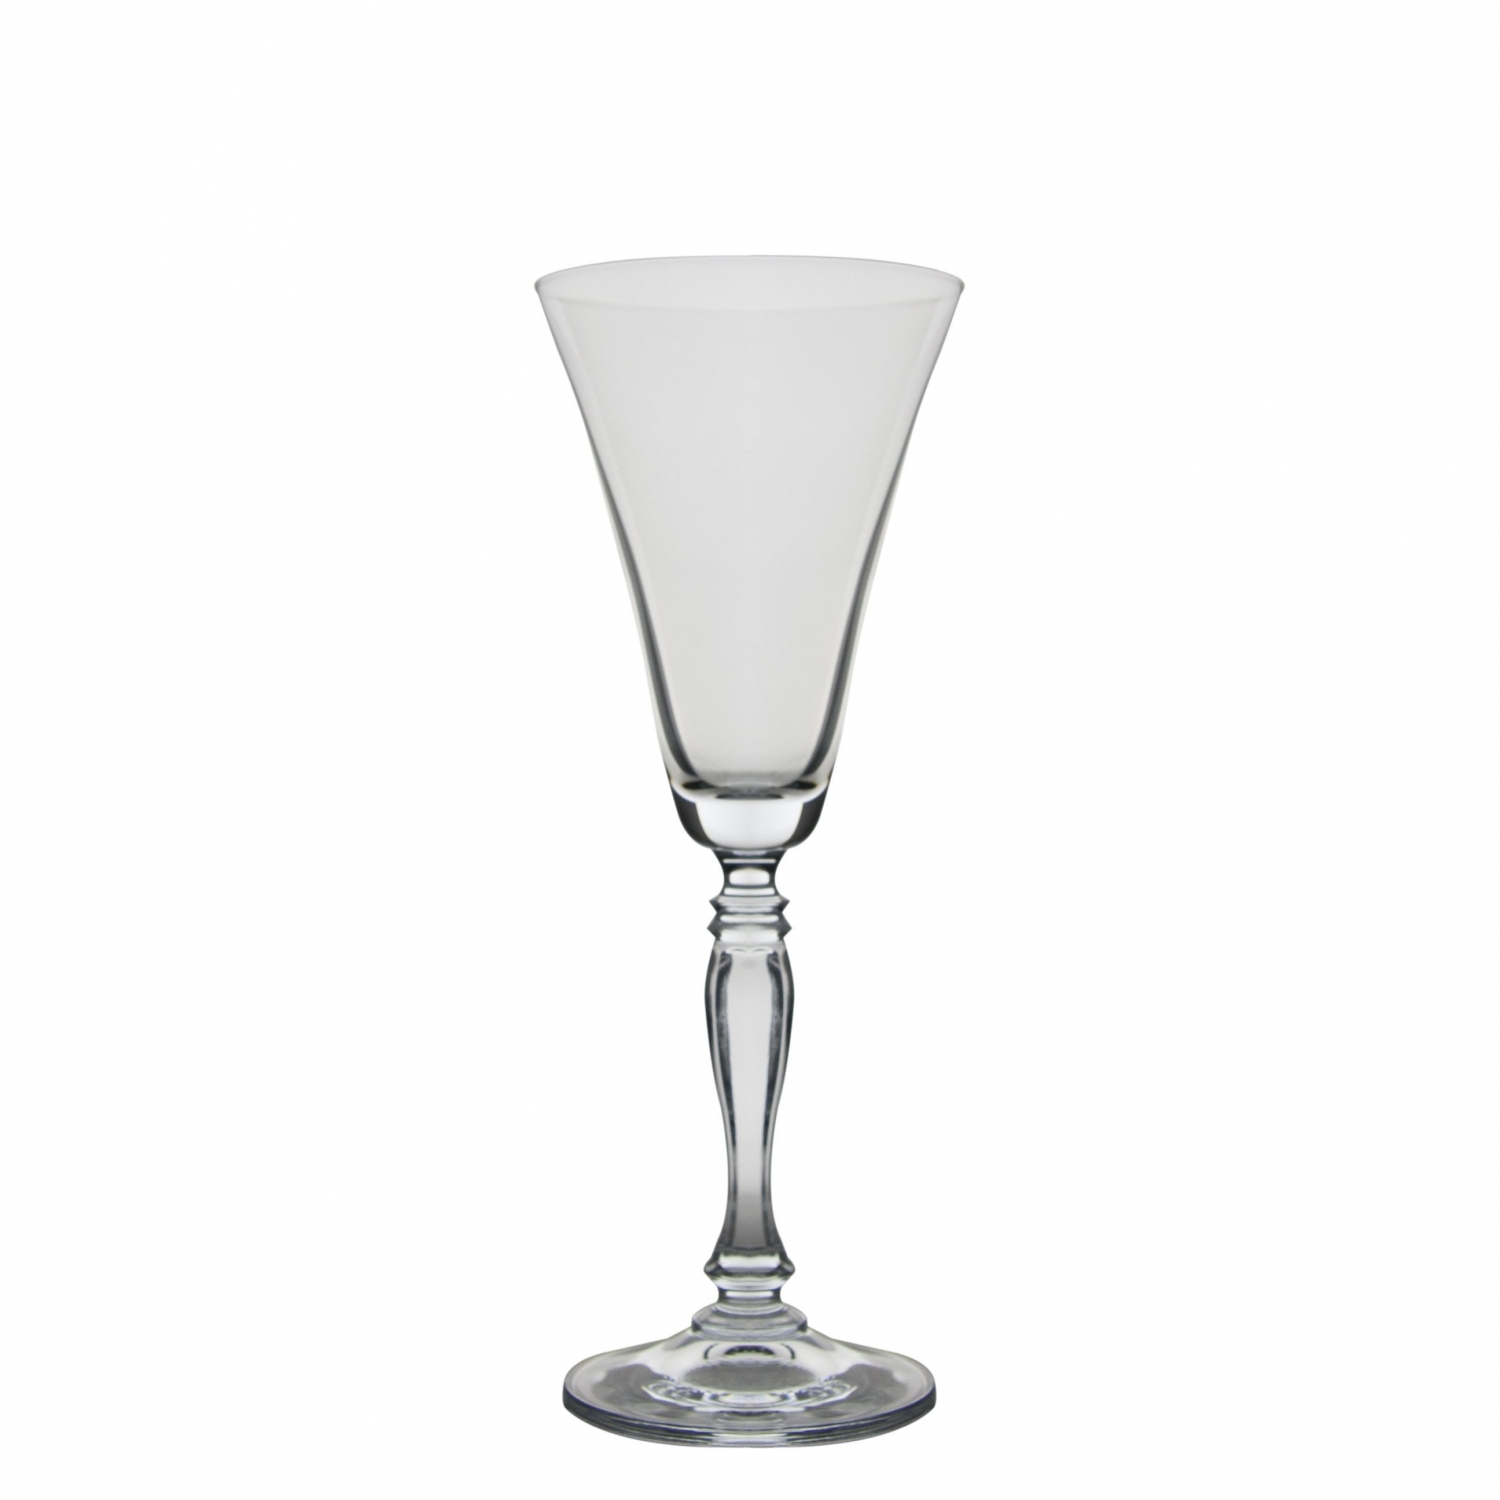 10 Strawberry Street DIAN-WW 6.5 oz. Diana White Wine Goblet - 48 pcs